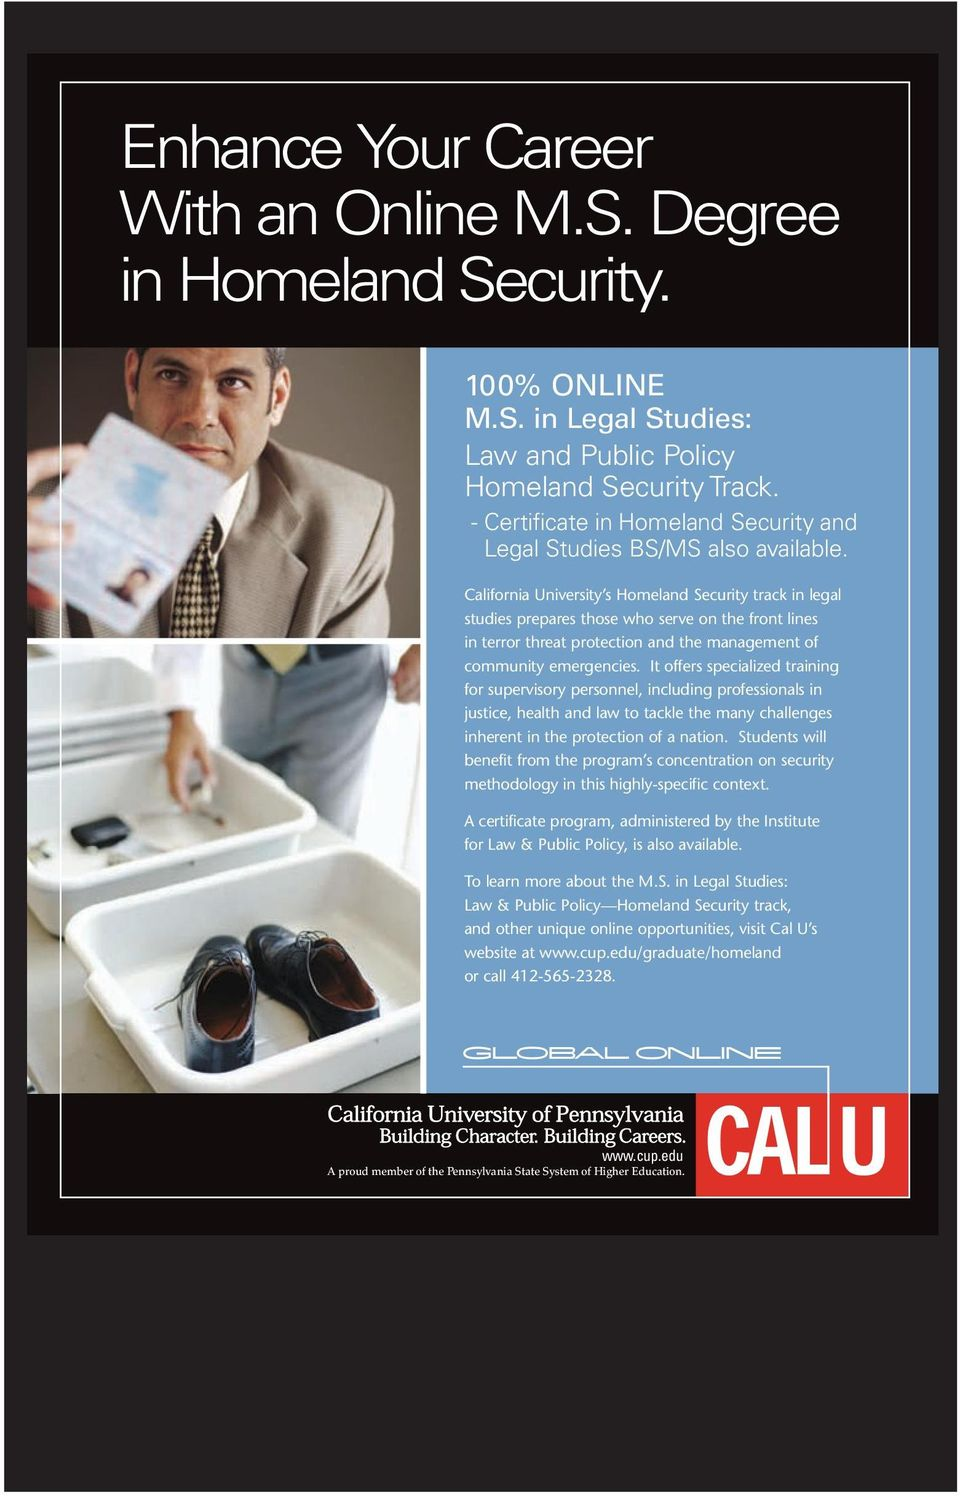 California University s Homeland Security track in legal studies prepares those who serve on the front lines in terror threat protection and the management of community emergencies.